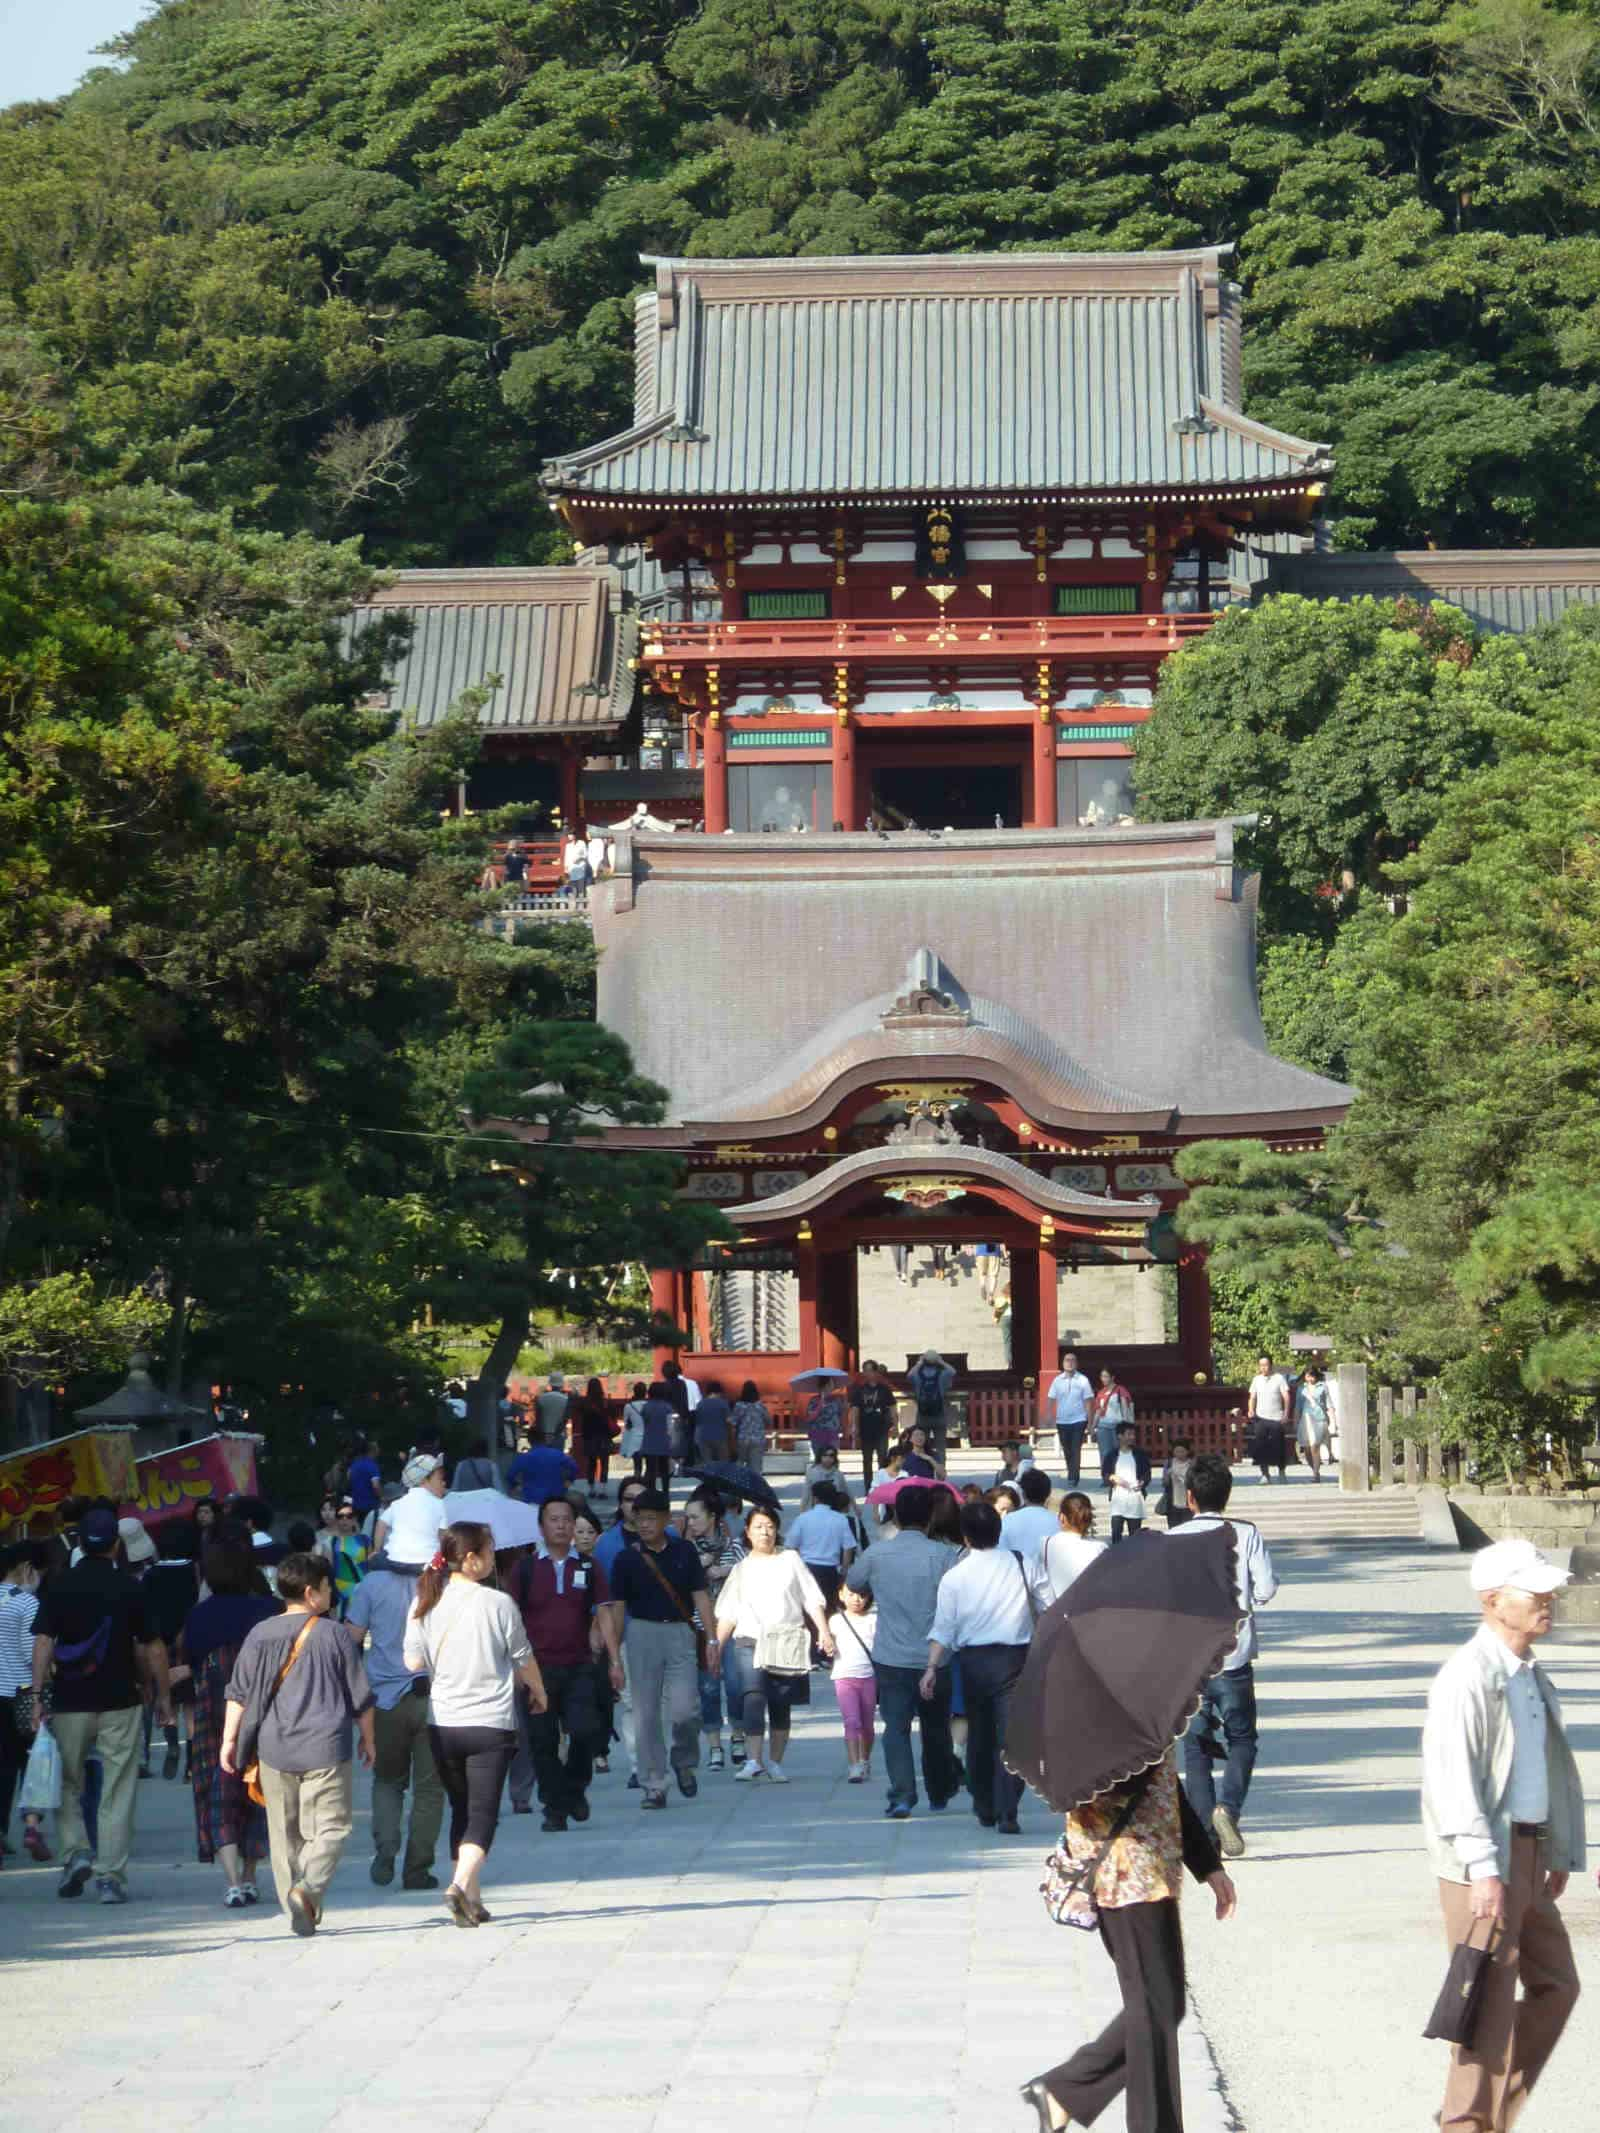 Hachiman shrine in Kamakura